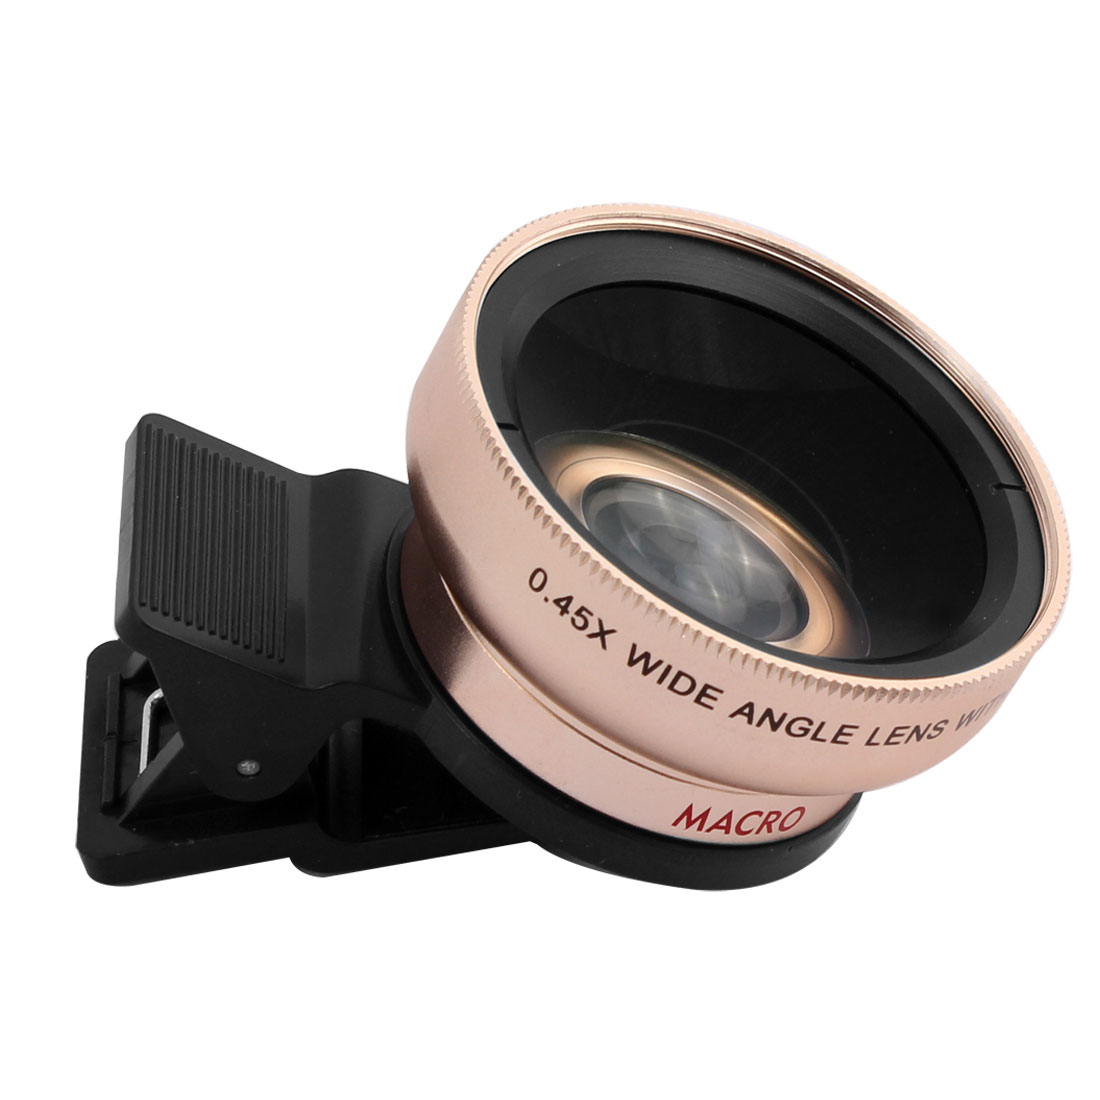 37mm HD 0.45x Super Wide Angle Macro Lens Kit Gold Tone for Mobile Phone Camera